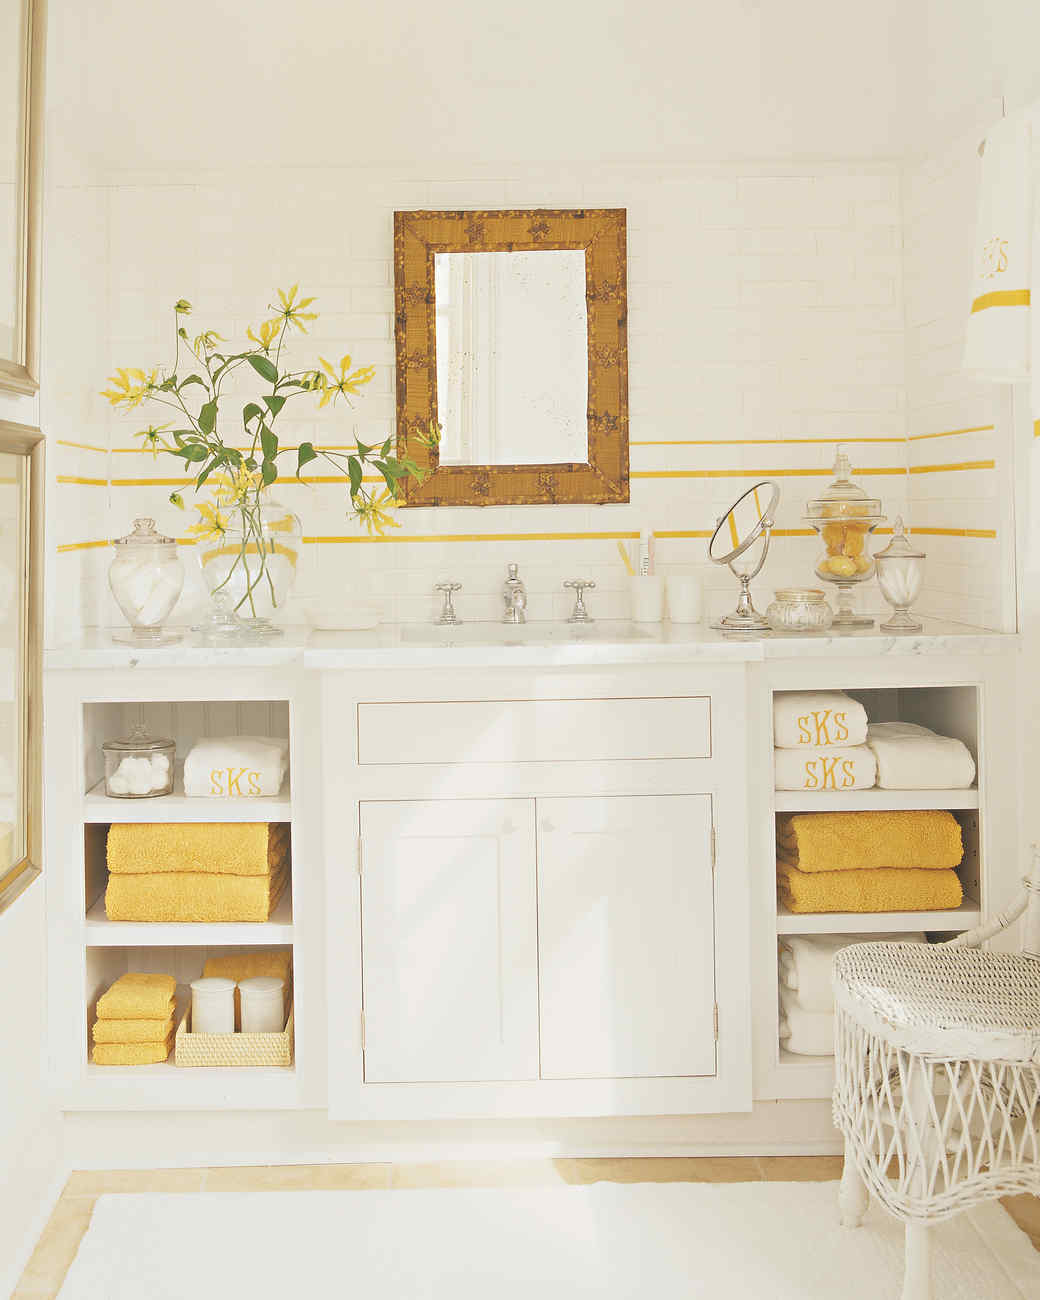 Generous Spa Inspired Small Bathrooms Small Bathroom Rentals Cost Square Painting Bathroom Vanity Pinterest All Glass Bathroom Mirrors Youthful San Diego Best Kitchen And Bath BlueKitchen And Bathroom Edmonton Yellow Rooms | Martha Stewart